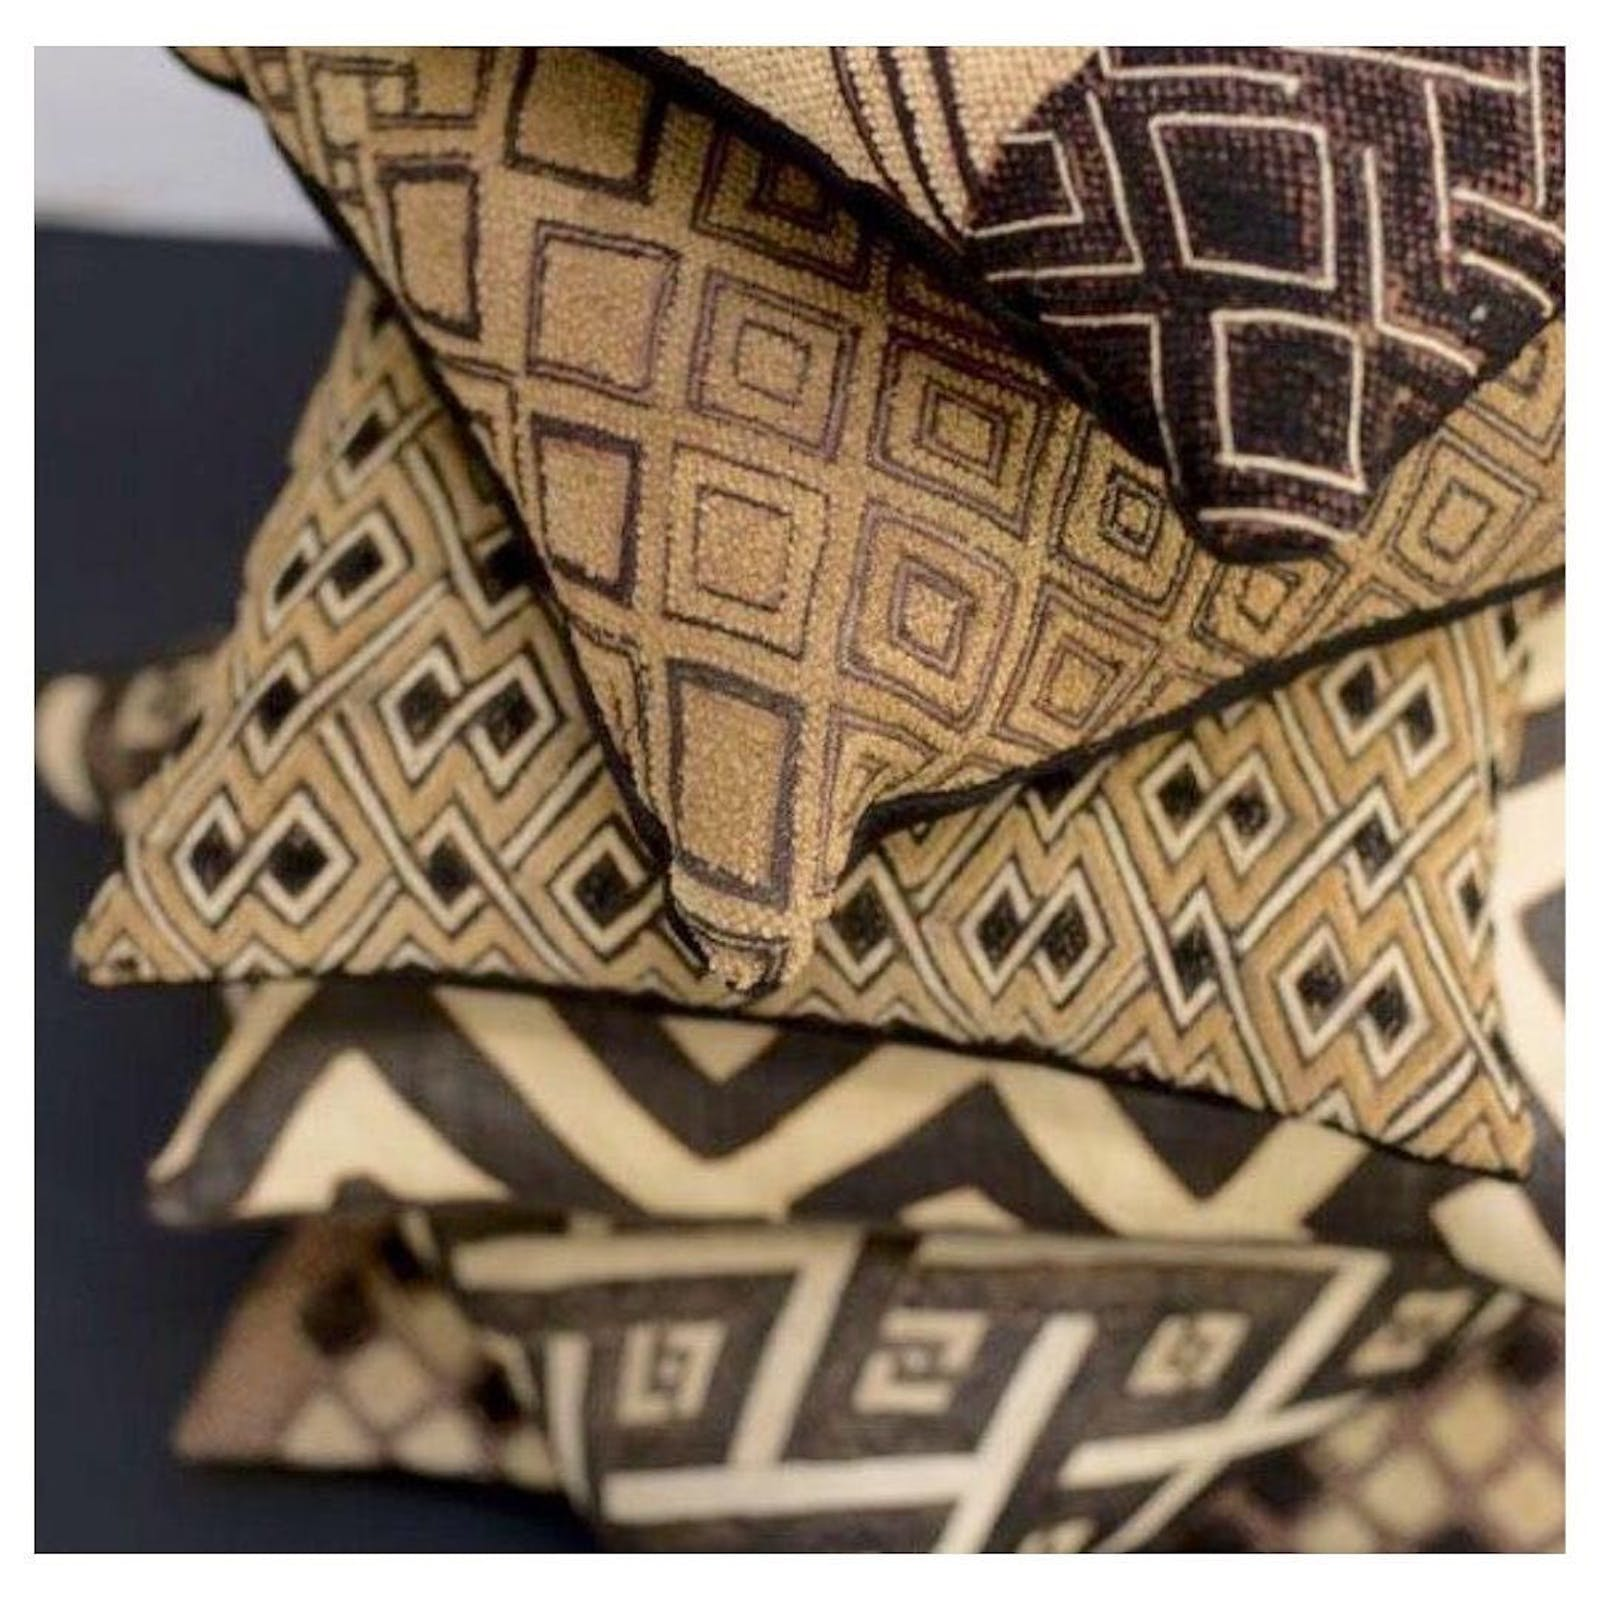 A stack of pillows in African designs in a kuba / raffia material